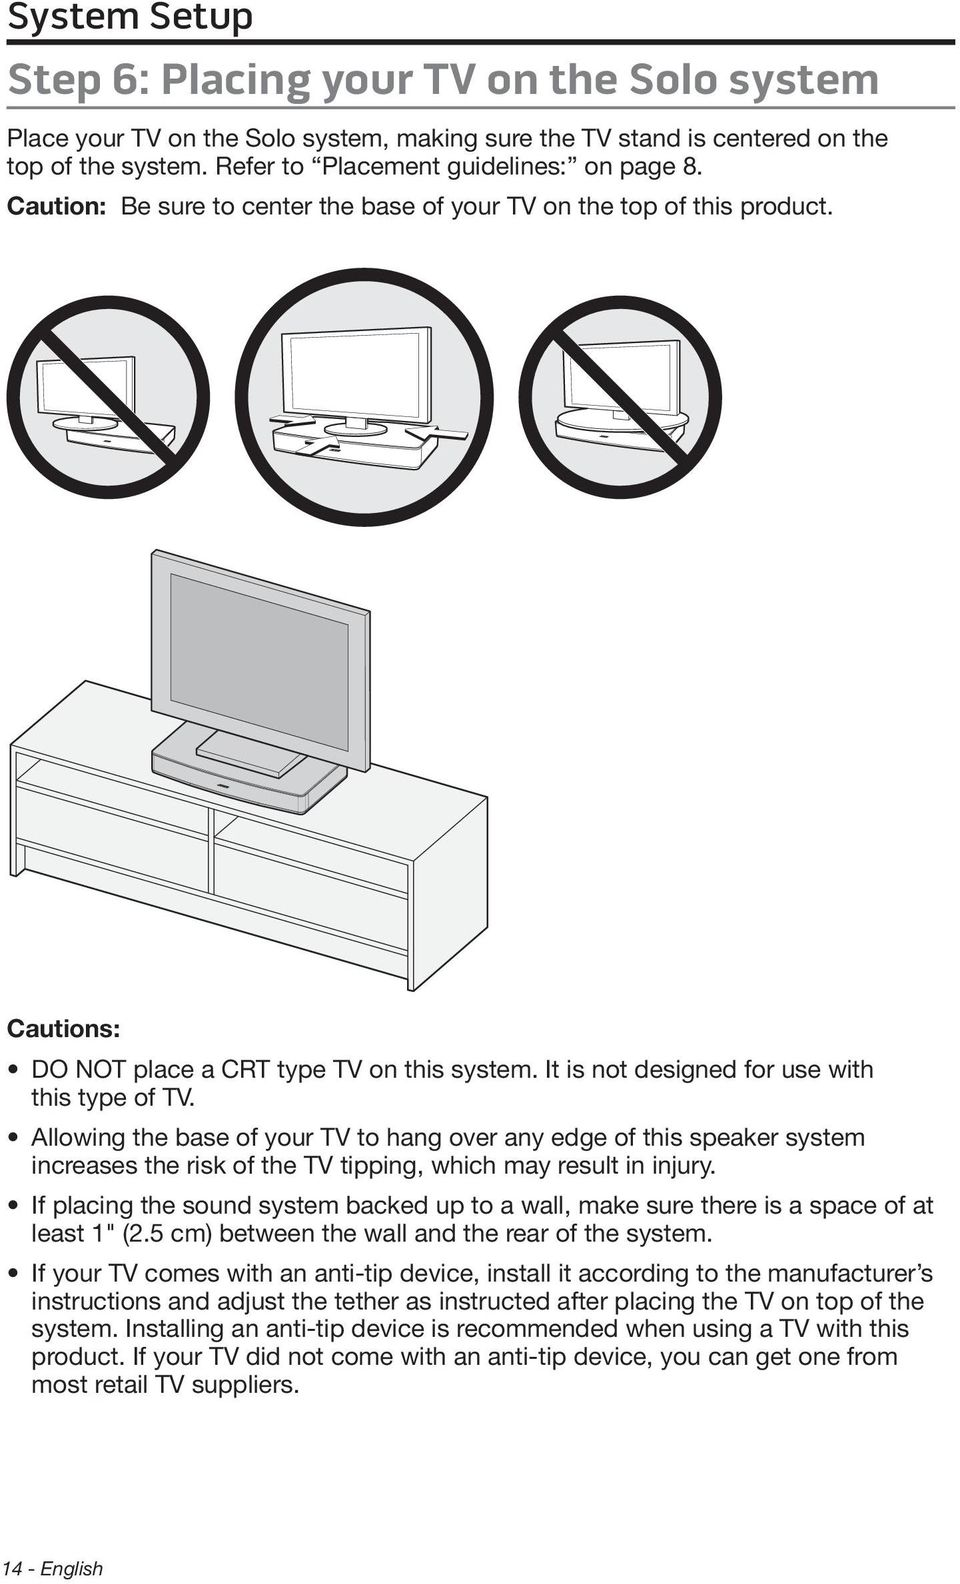 Allowing the base of your TV to hang over any edge of this speaker system increases the risk of the TV tipping, which may result in injury.